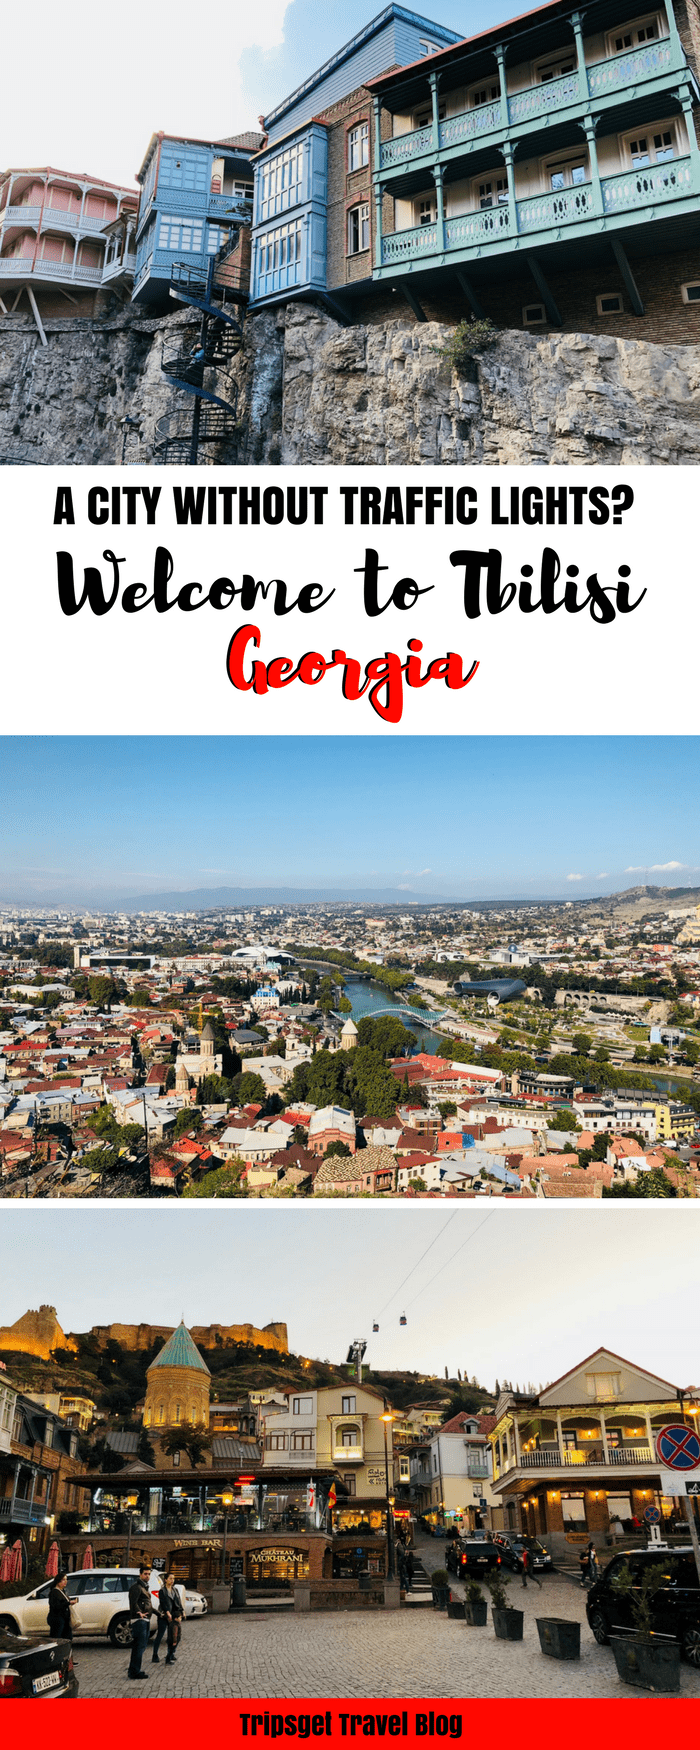 Tbilisi, Georgia is a city without traffic lights. What to see in Tbilisi? Tbilisi attractions and our experience in Tbilisi. Georgian wine and food